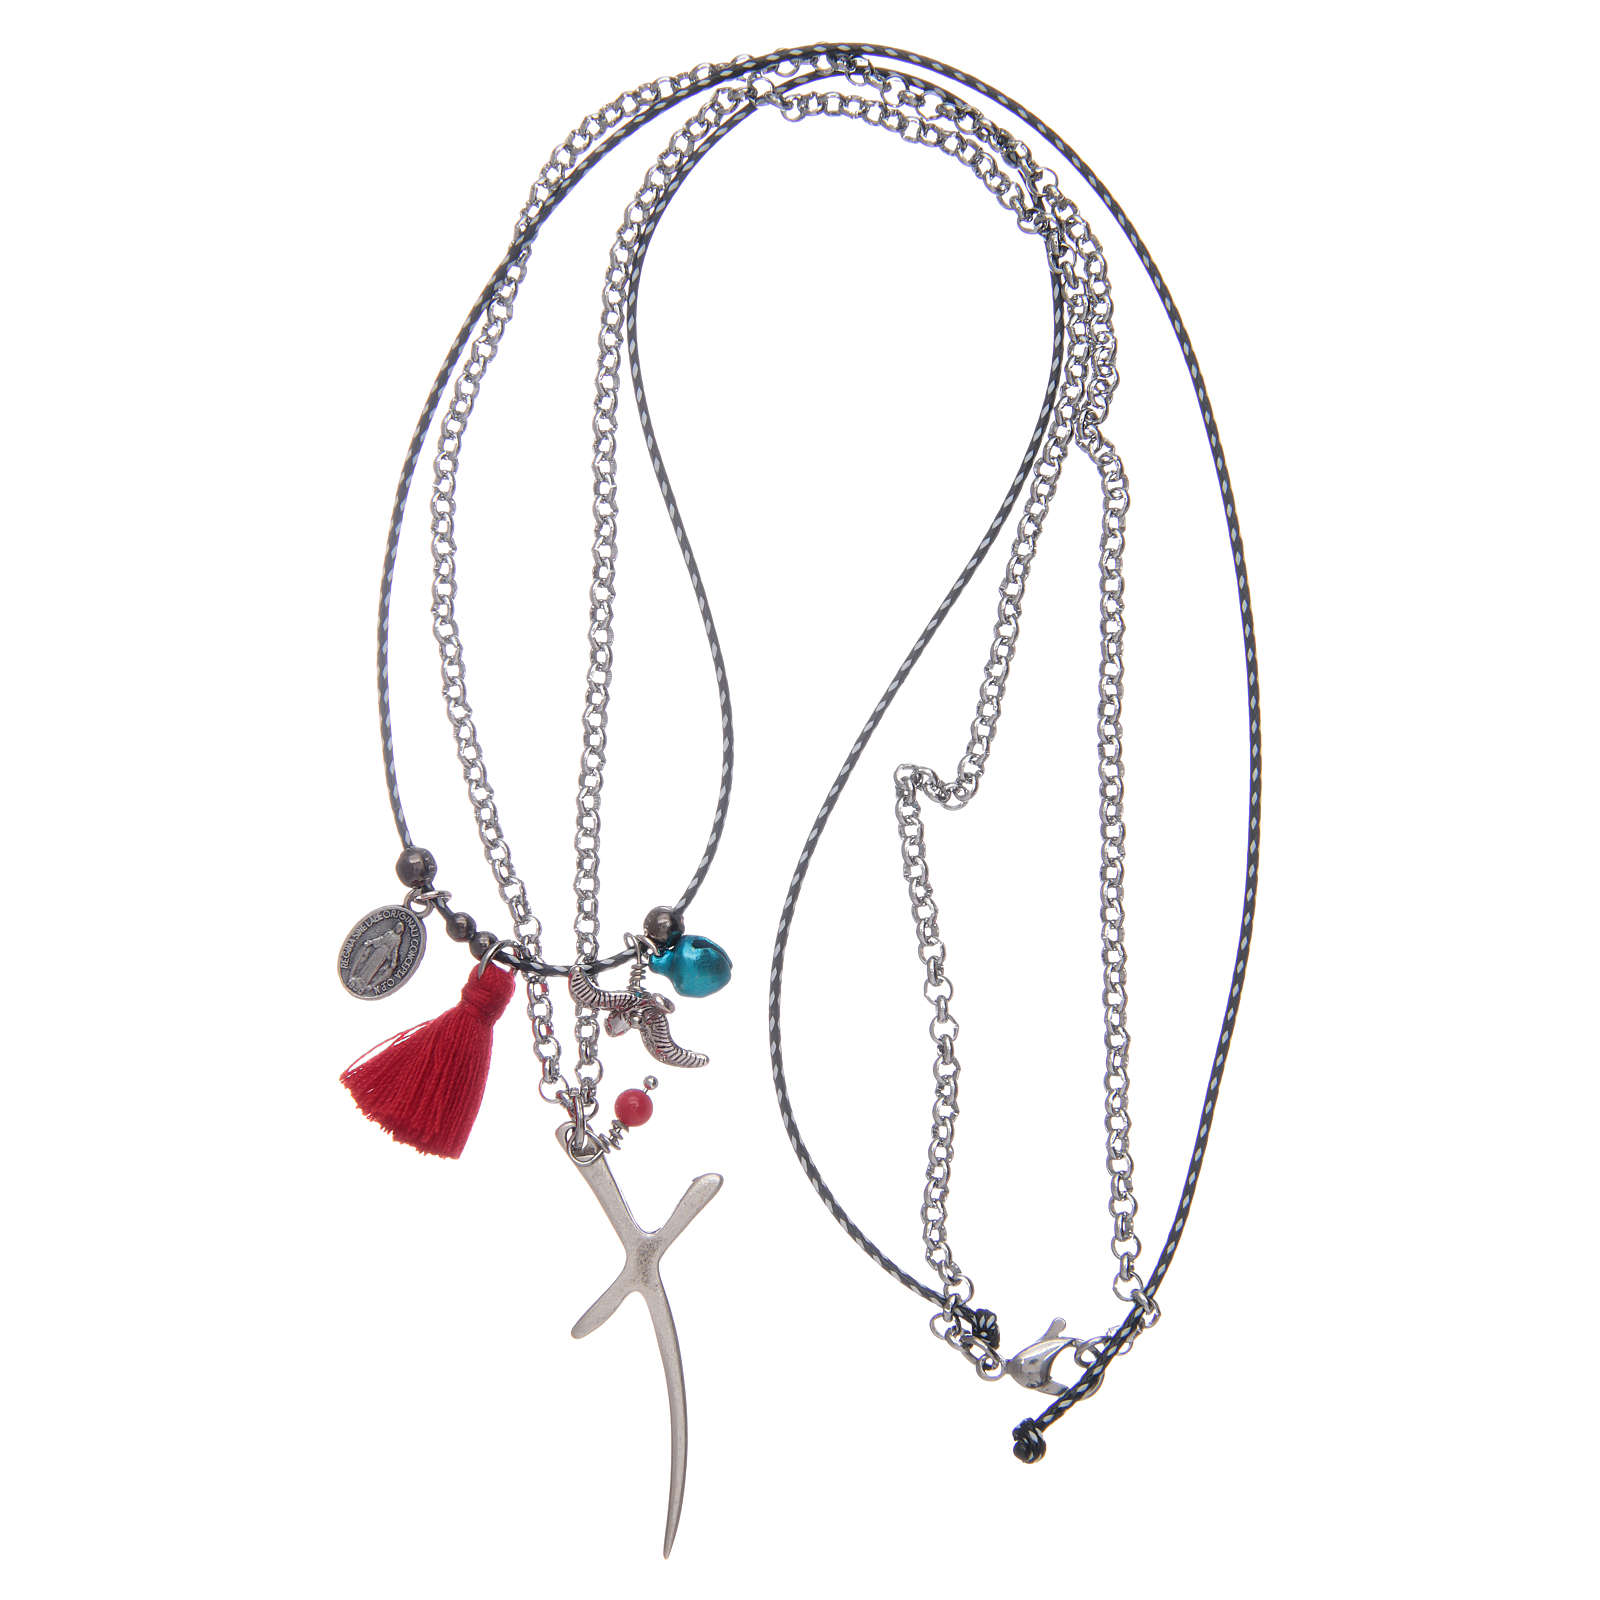 Necklace with chain, stylized cross and red tassel 4